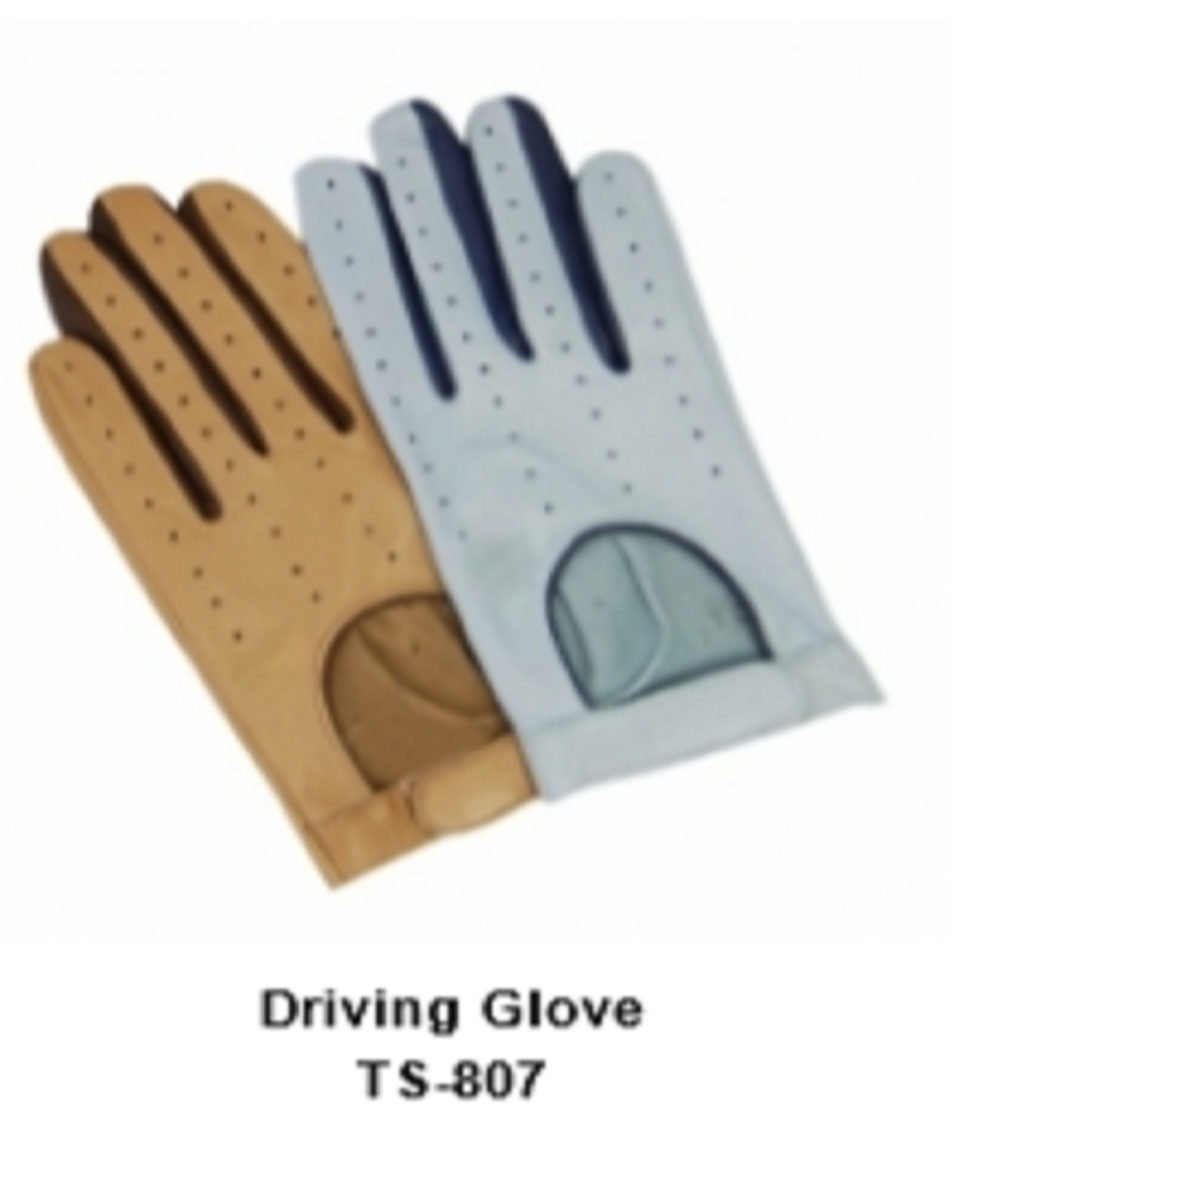 Leather Men's Fashion Driving Gloves Model No. TSI 807